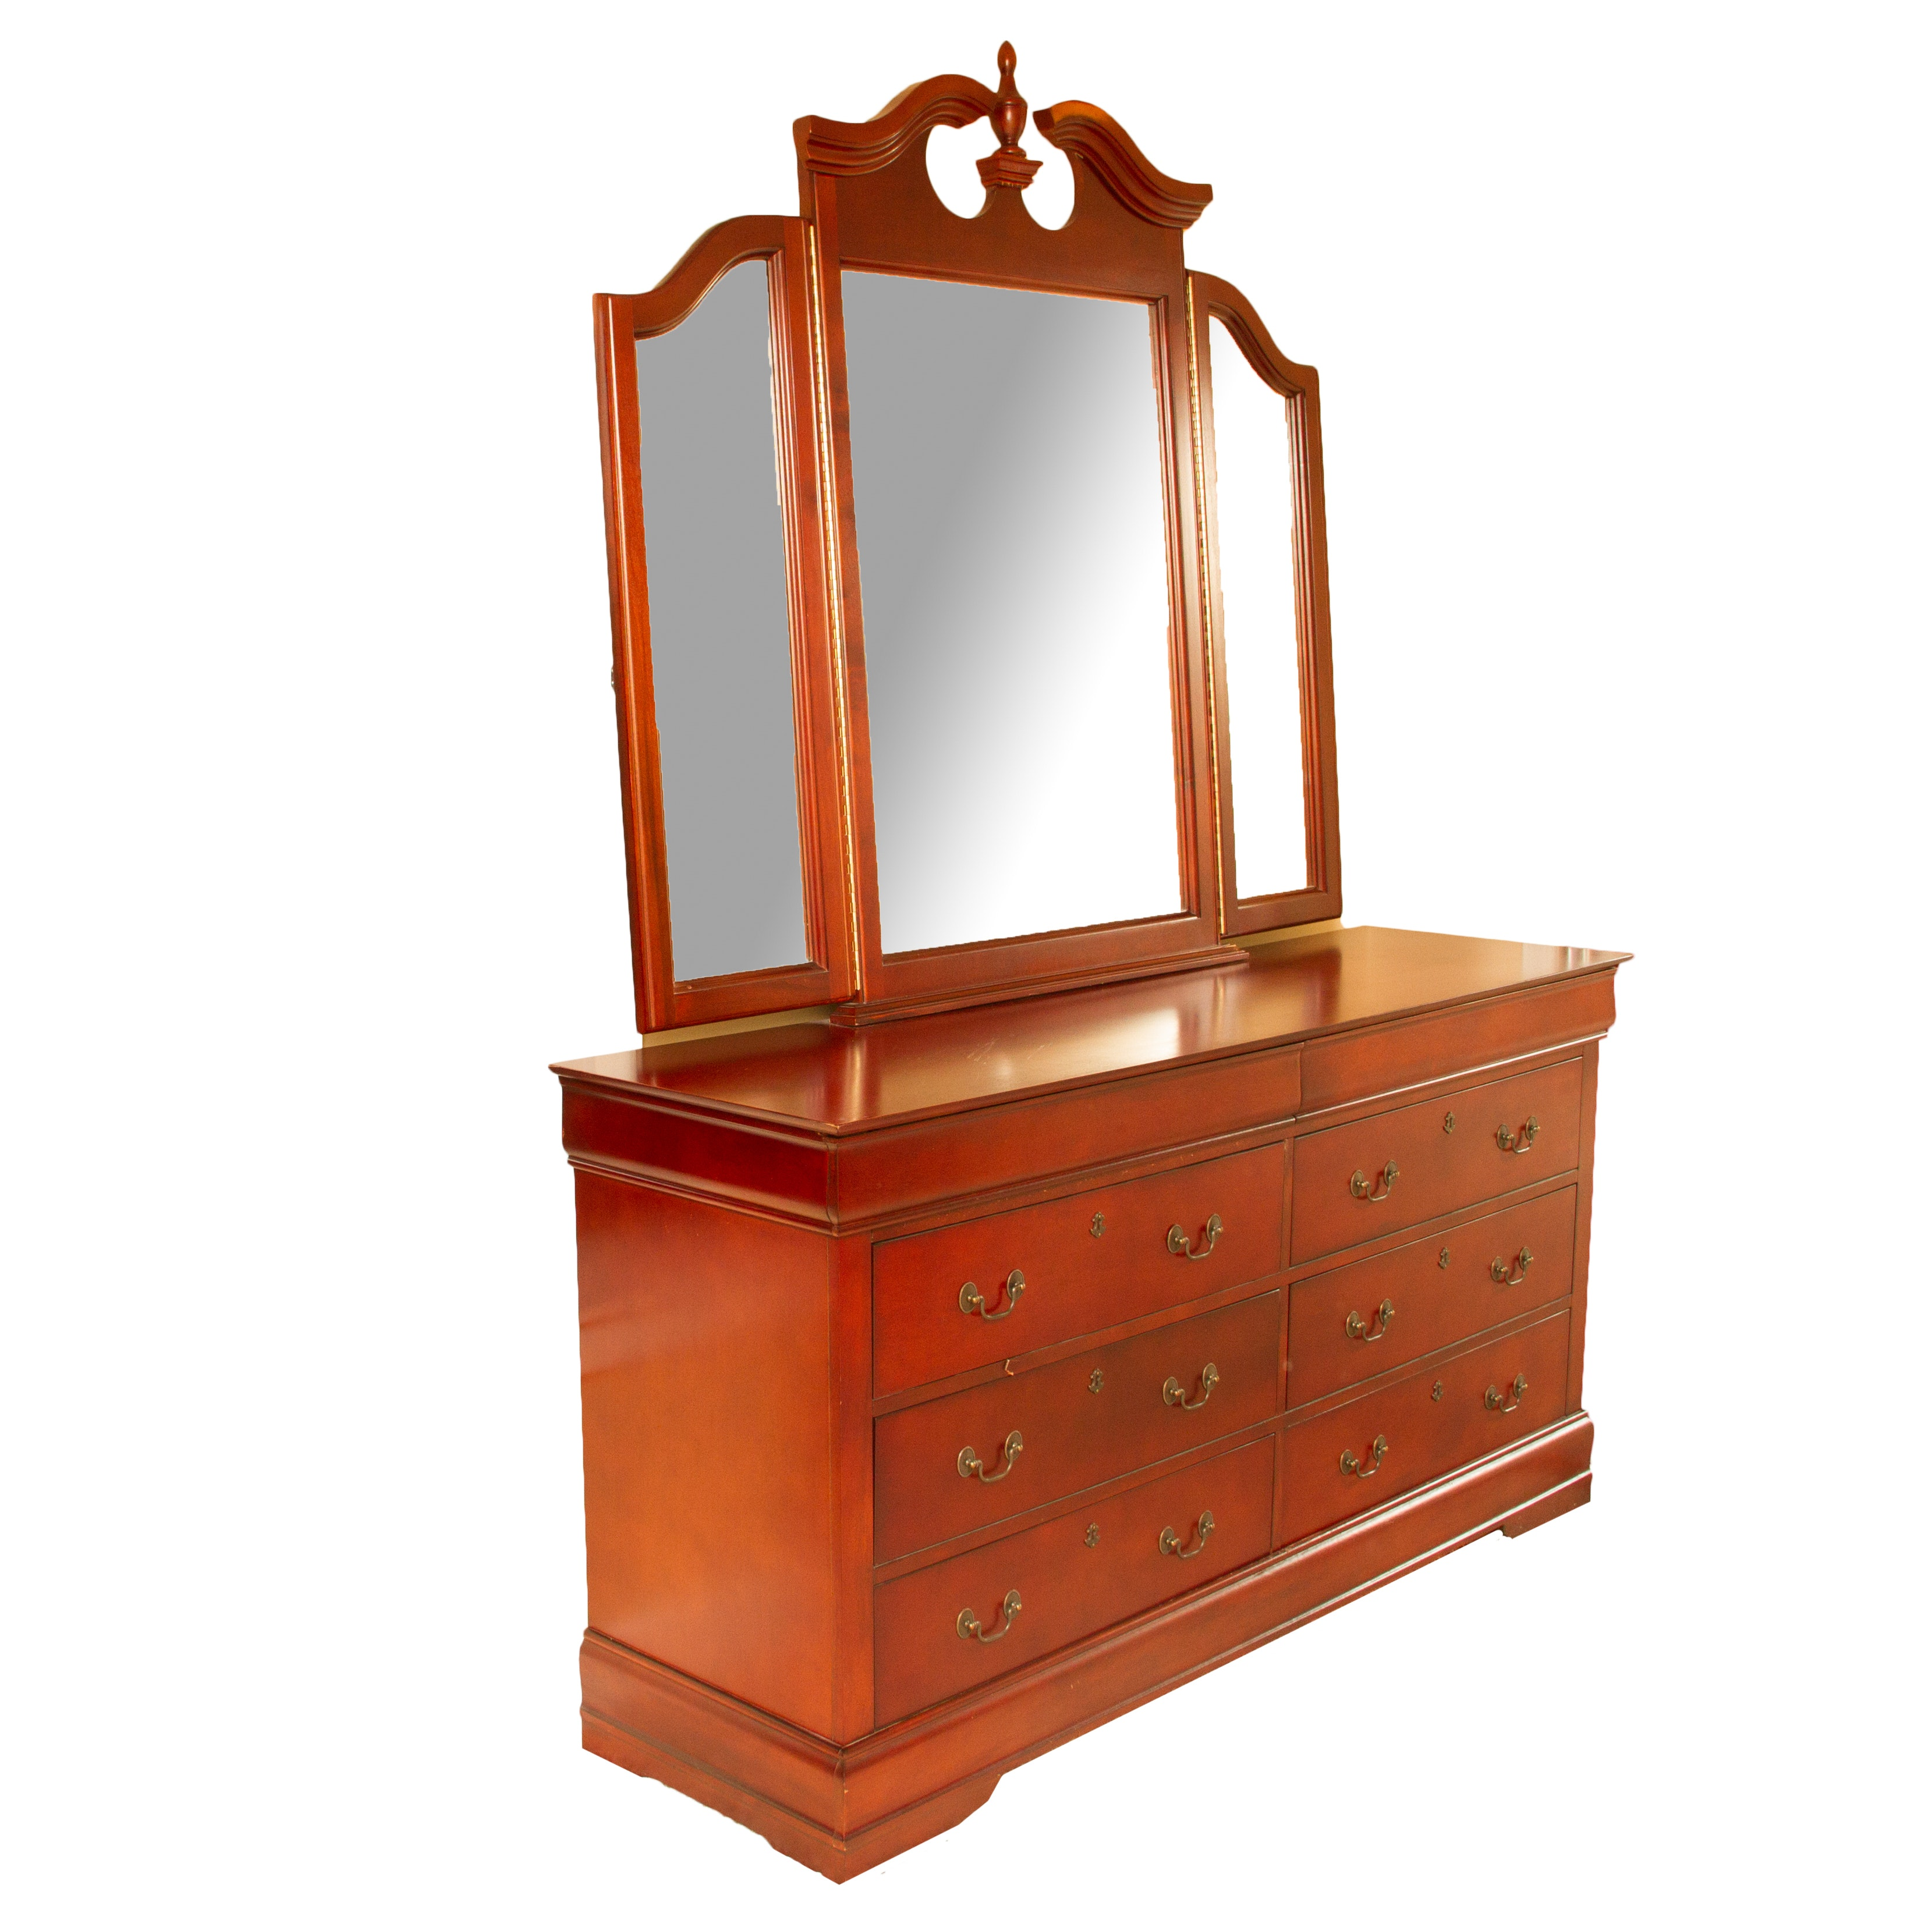 Early 21st Century Federal Style Dresser and Mirror